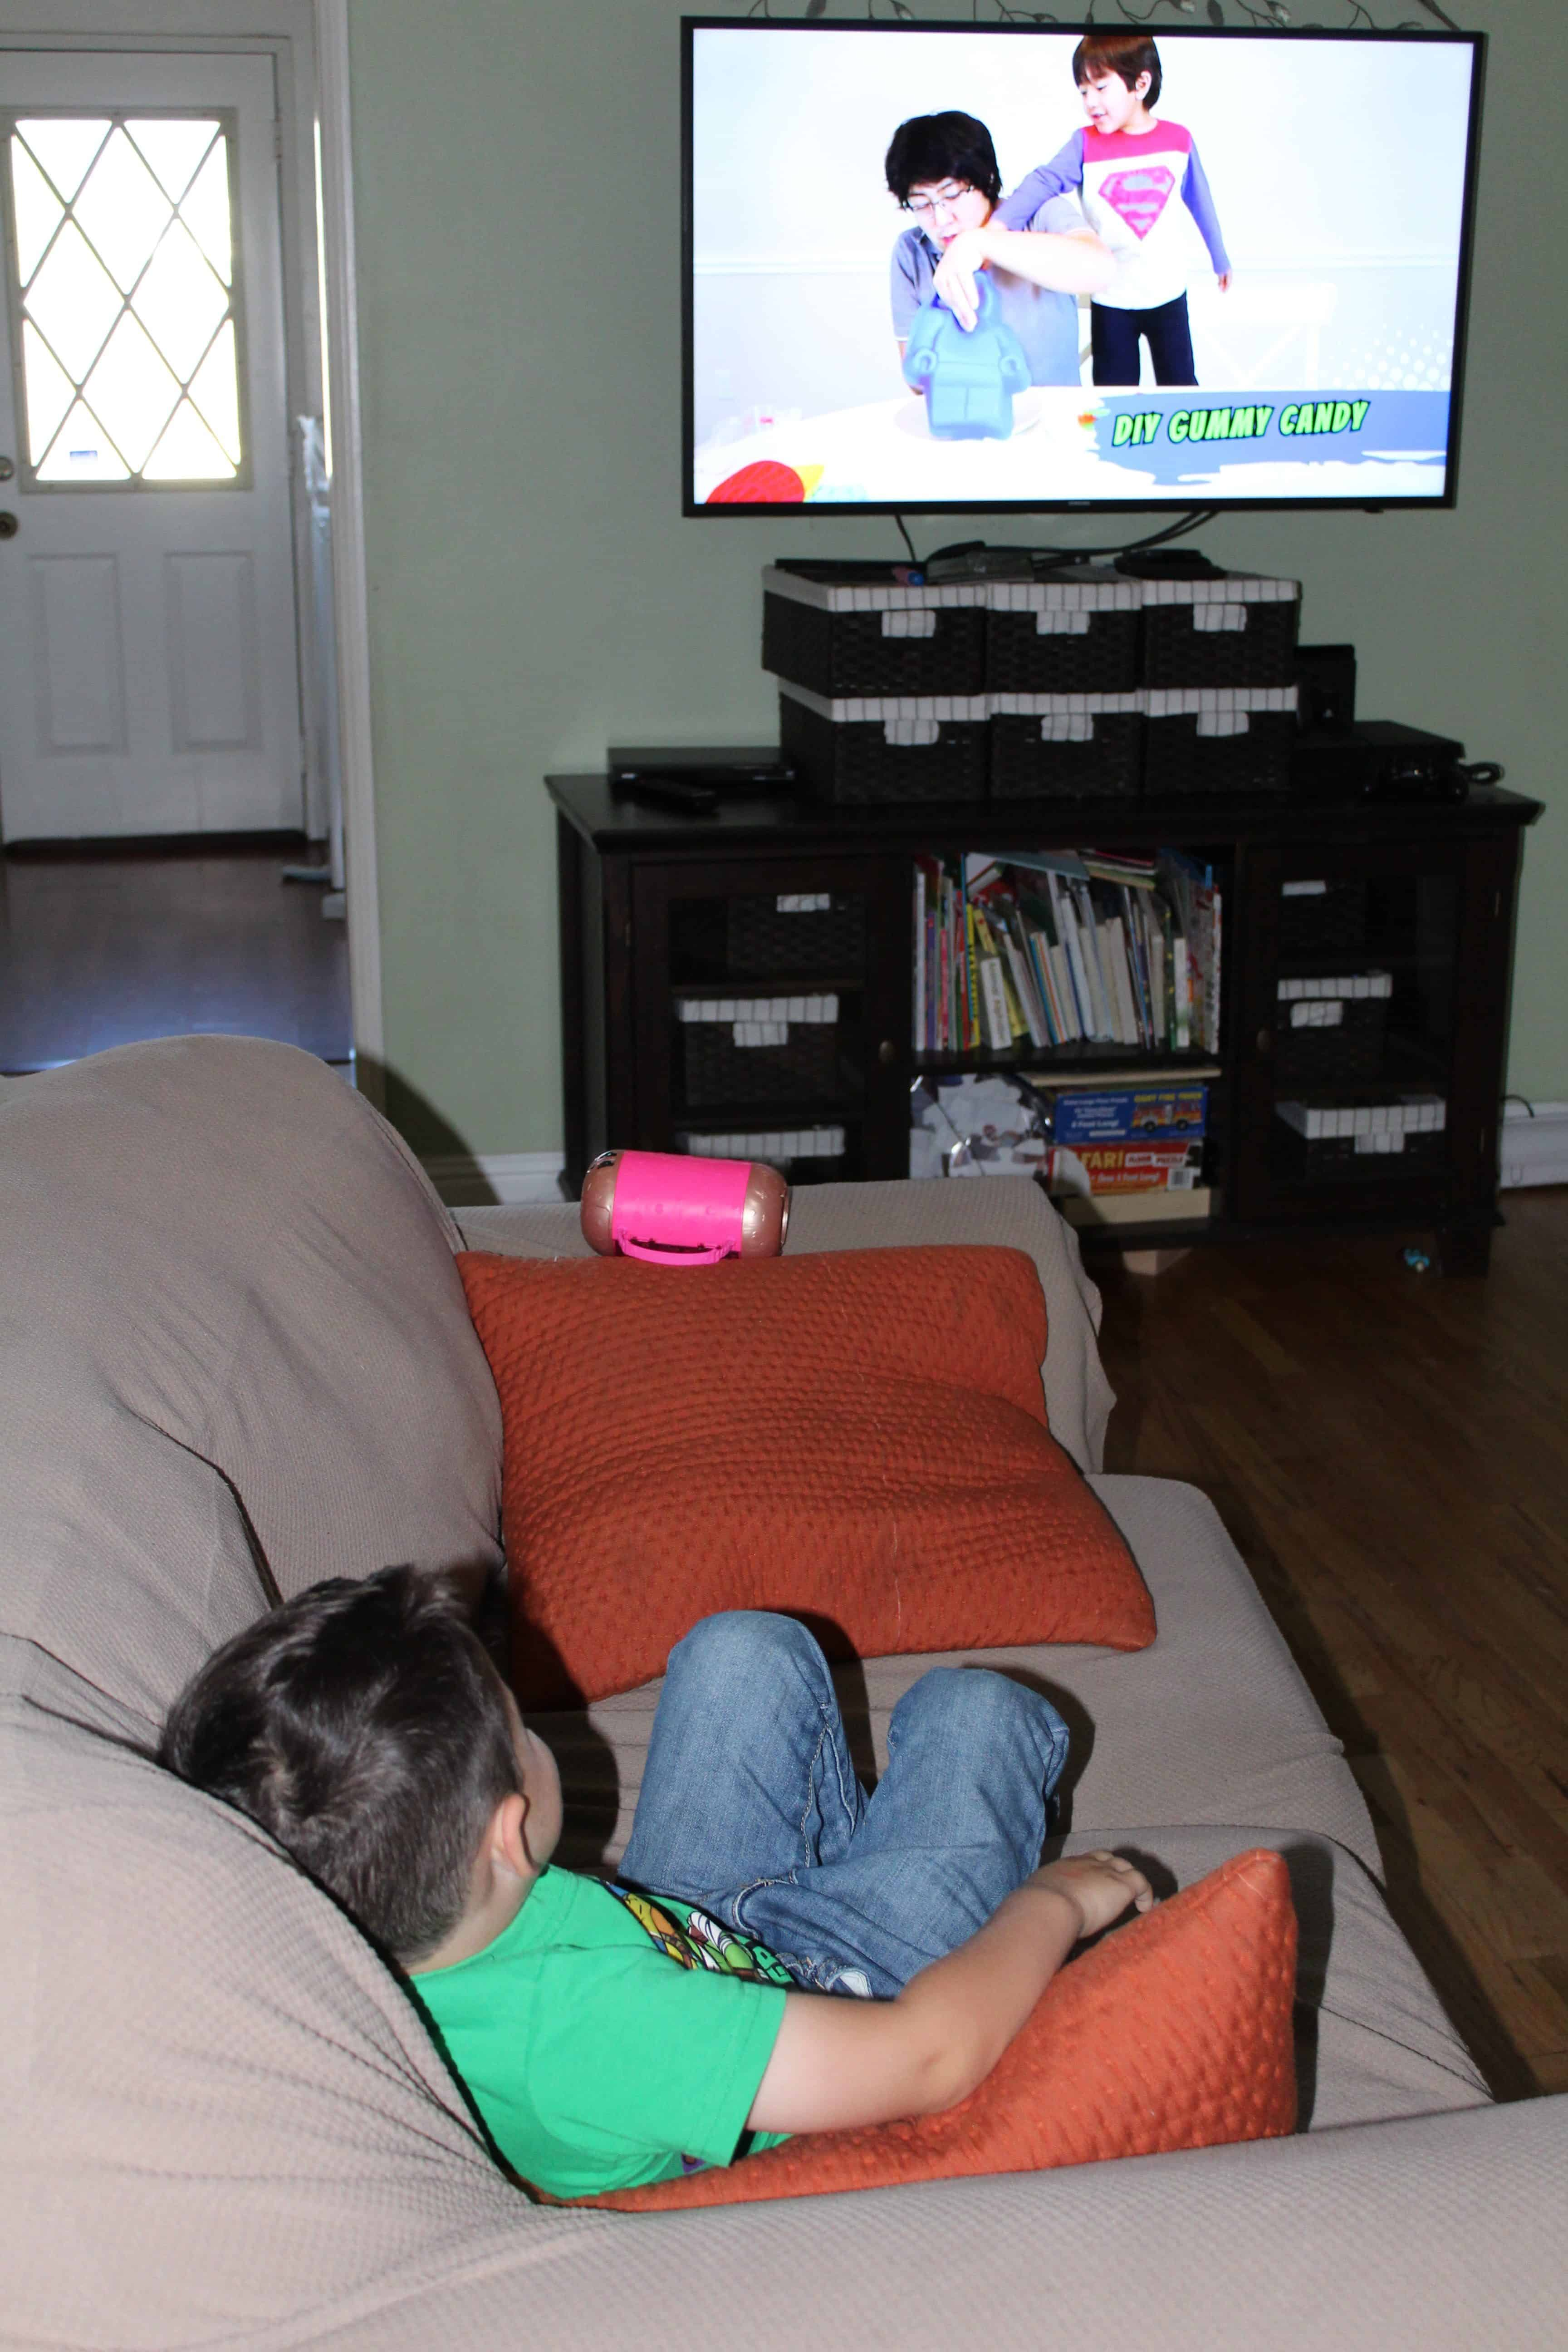 Child sitting on a sofa enjoying screen time on the TV.